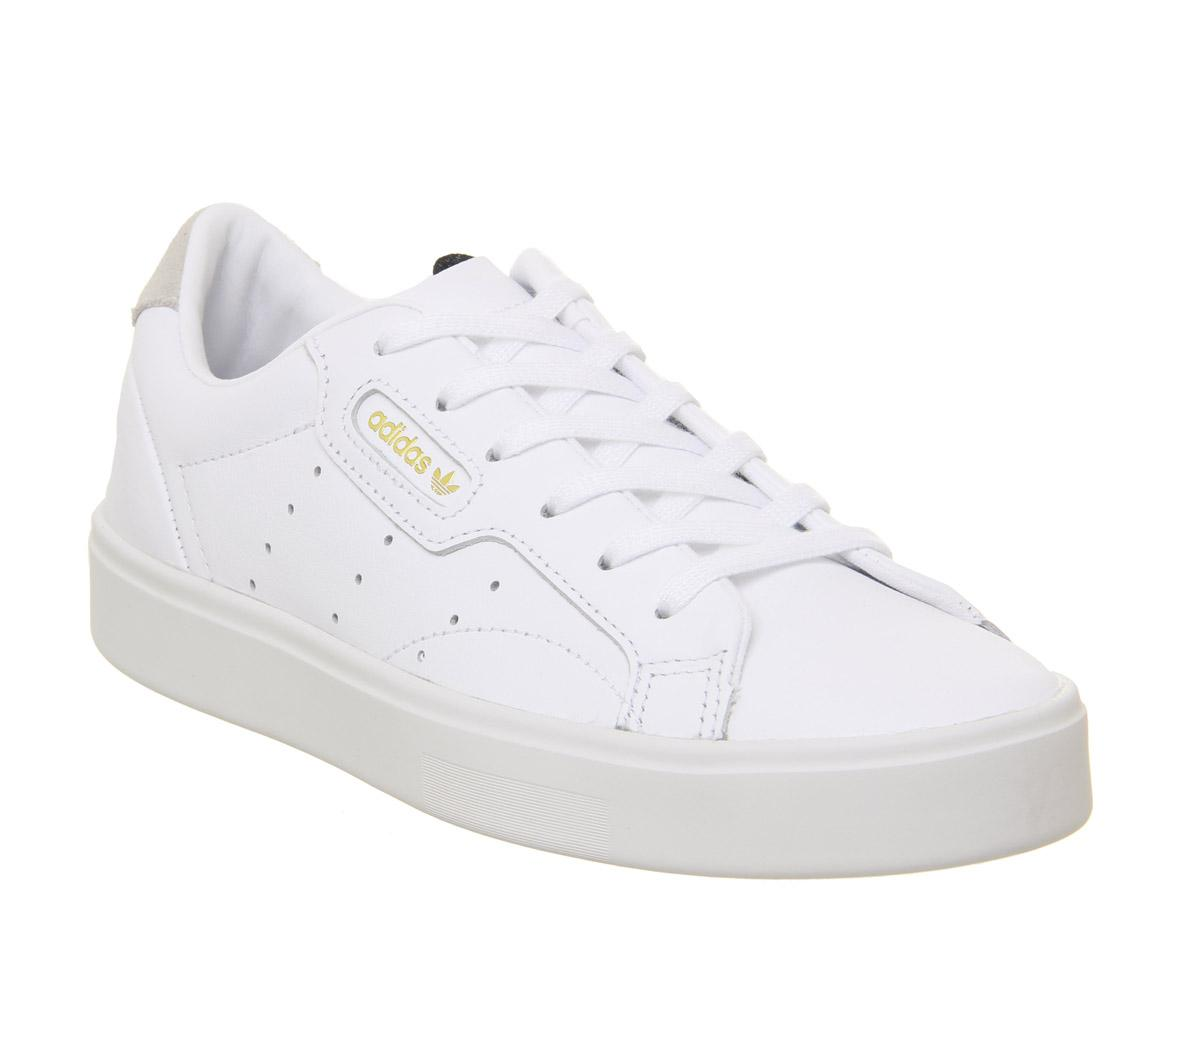 Womens Adidas White Leather Lace Up Trainers Size UK 6 *Ex